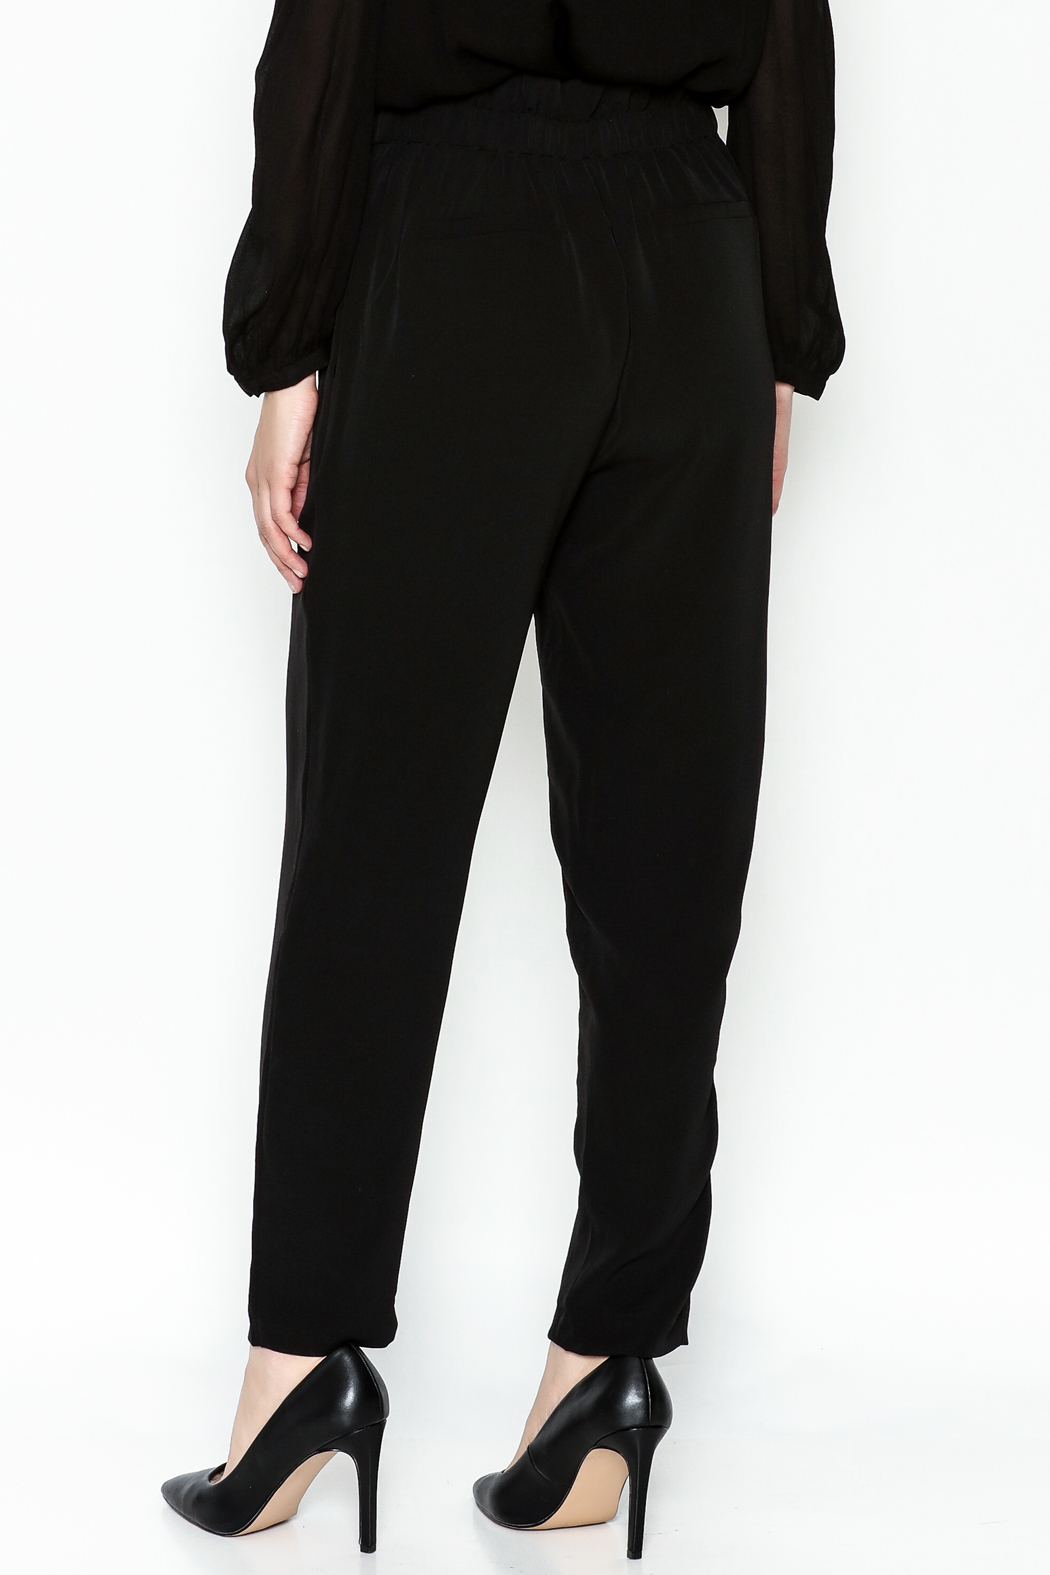 WREN & WILLA Gold Button Pants - Back Cropped Image